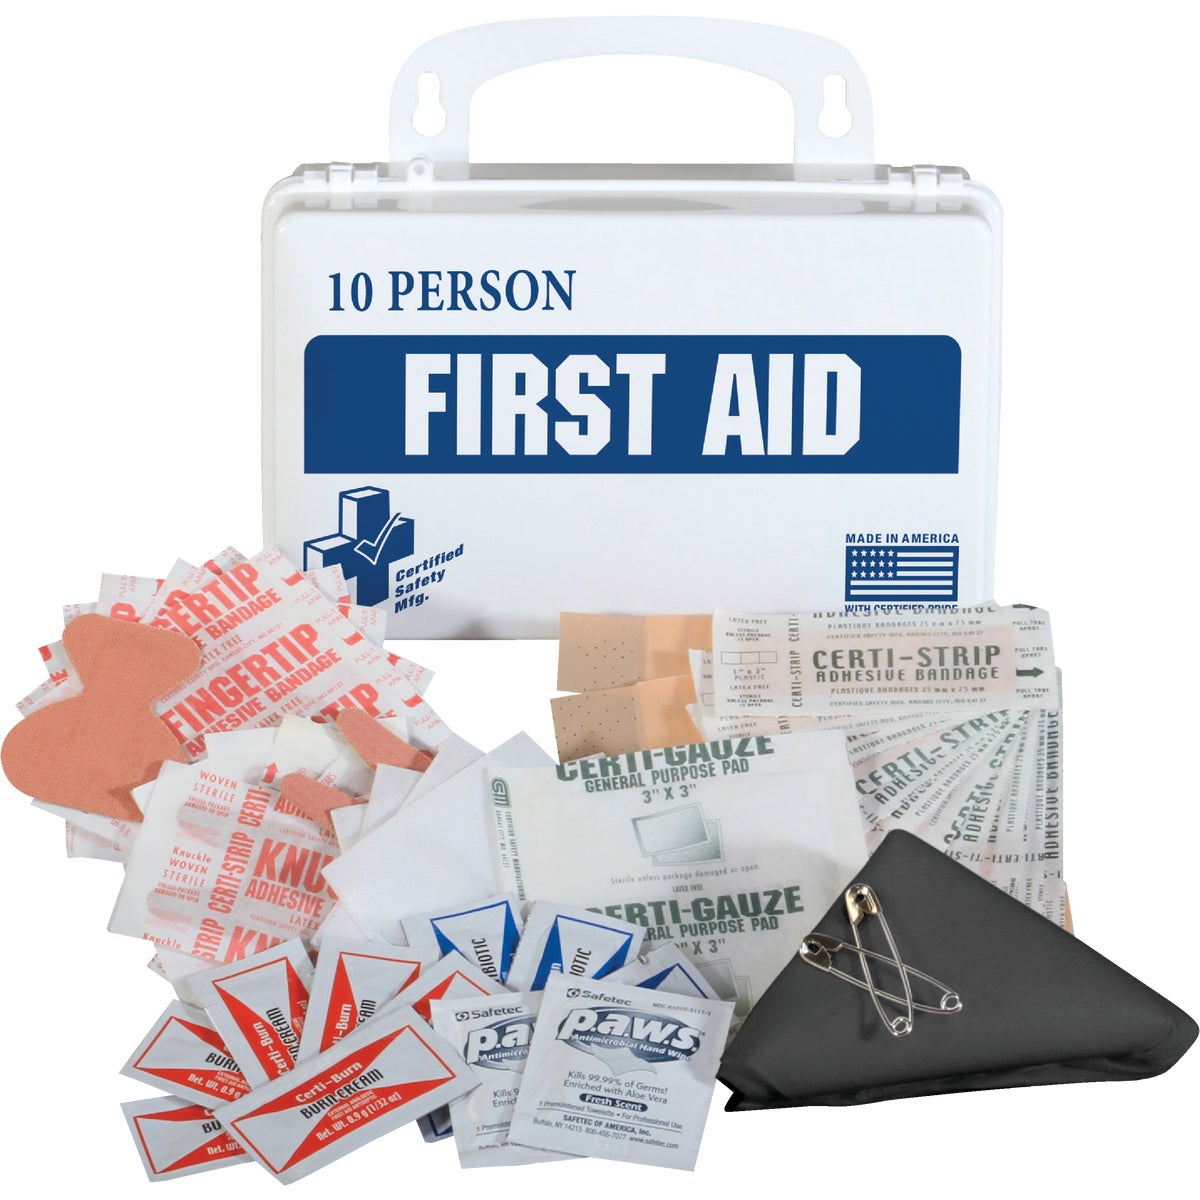 62PC FIRST AID KIT - 10068529 by Msa Safety